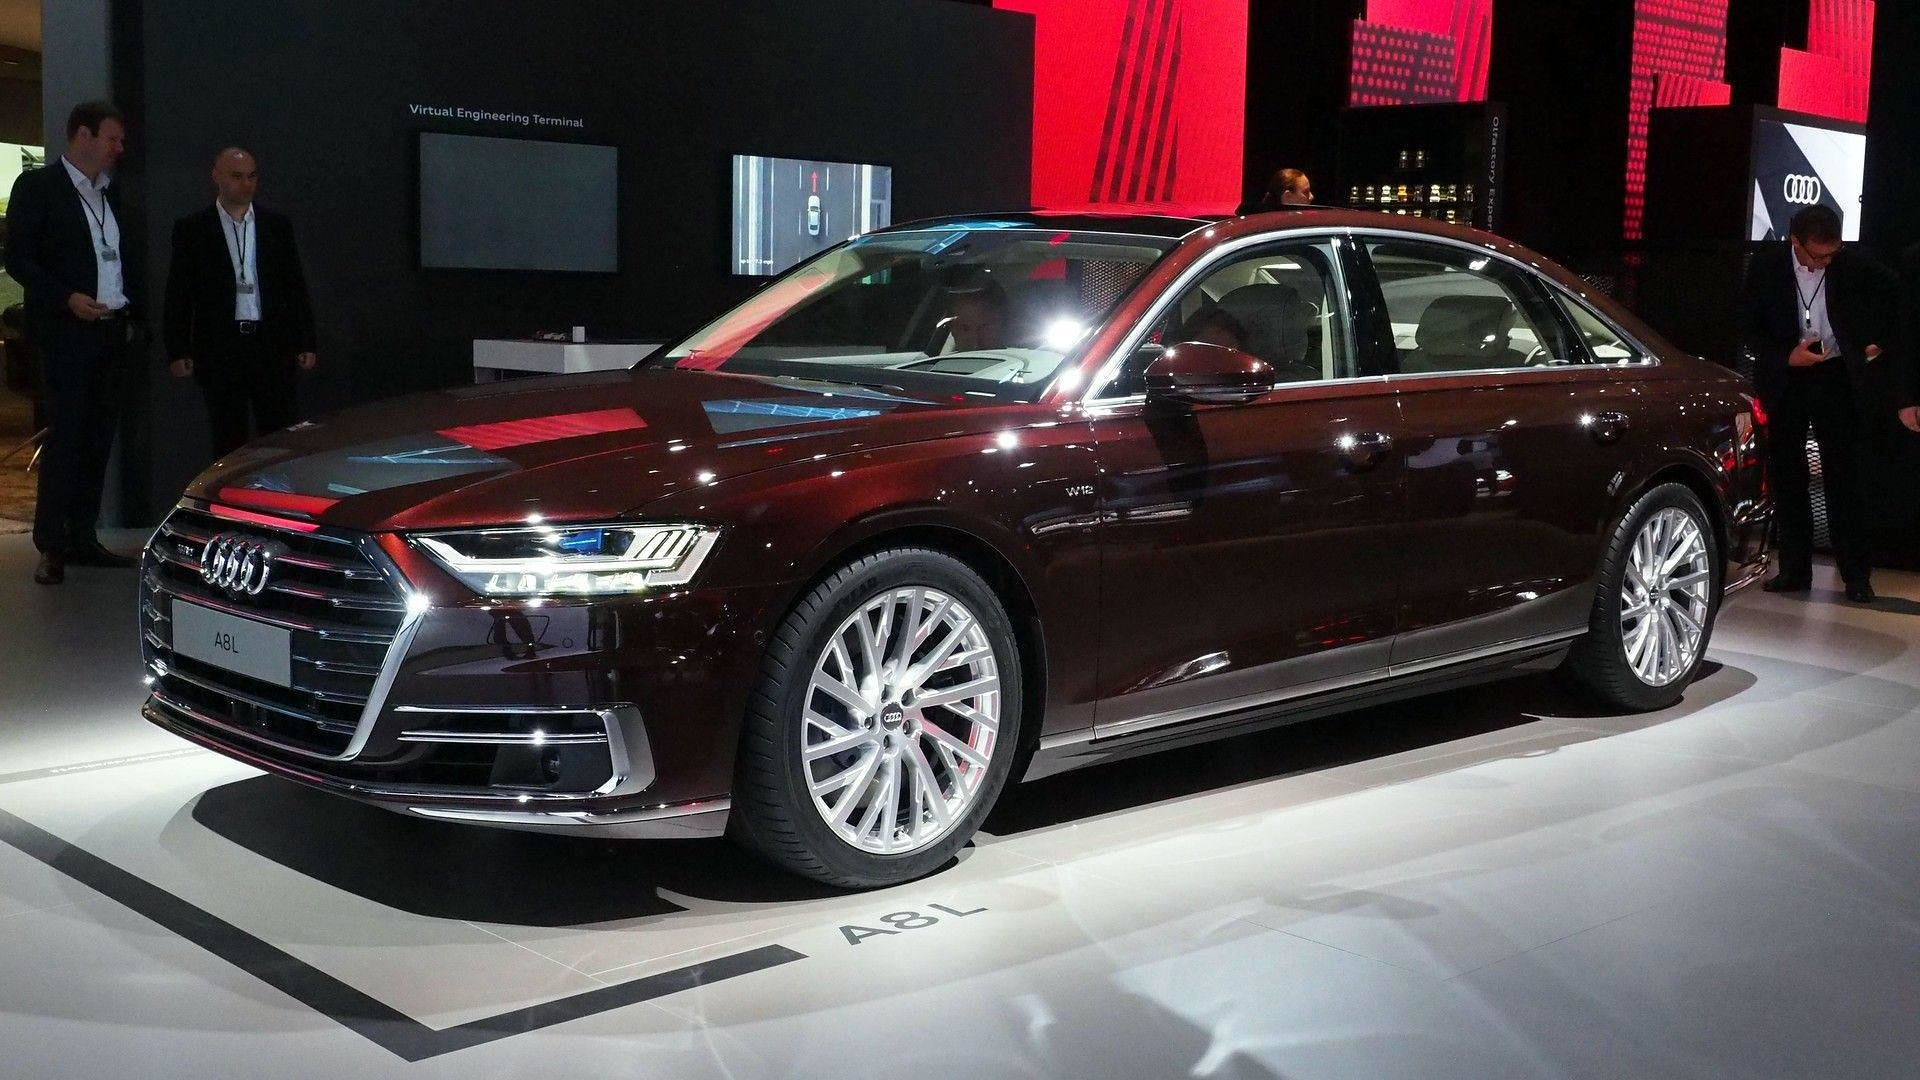 Latest 2018 Audi A8 Has Lasers Foot Massagers And A Big Price Tag Free Download